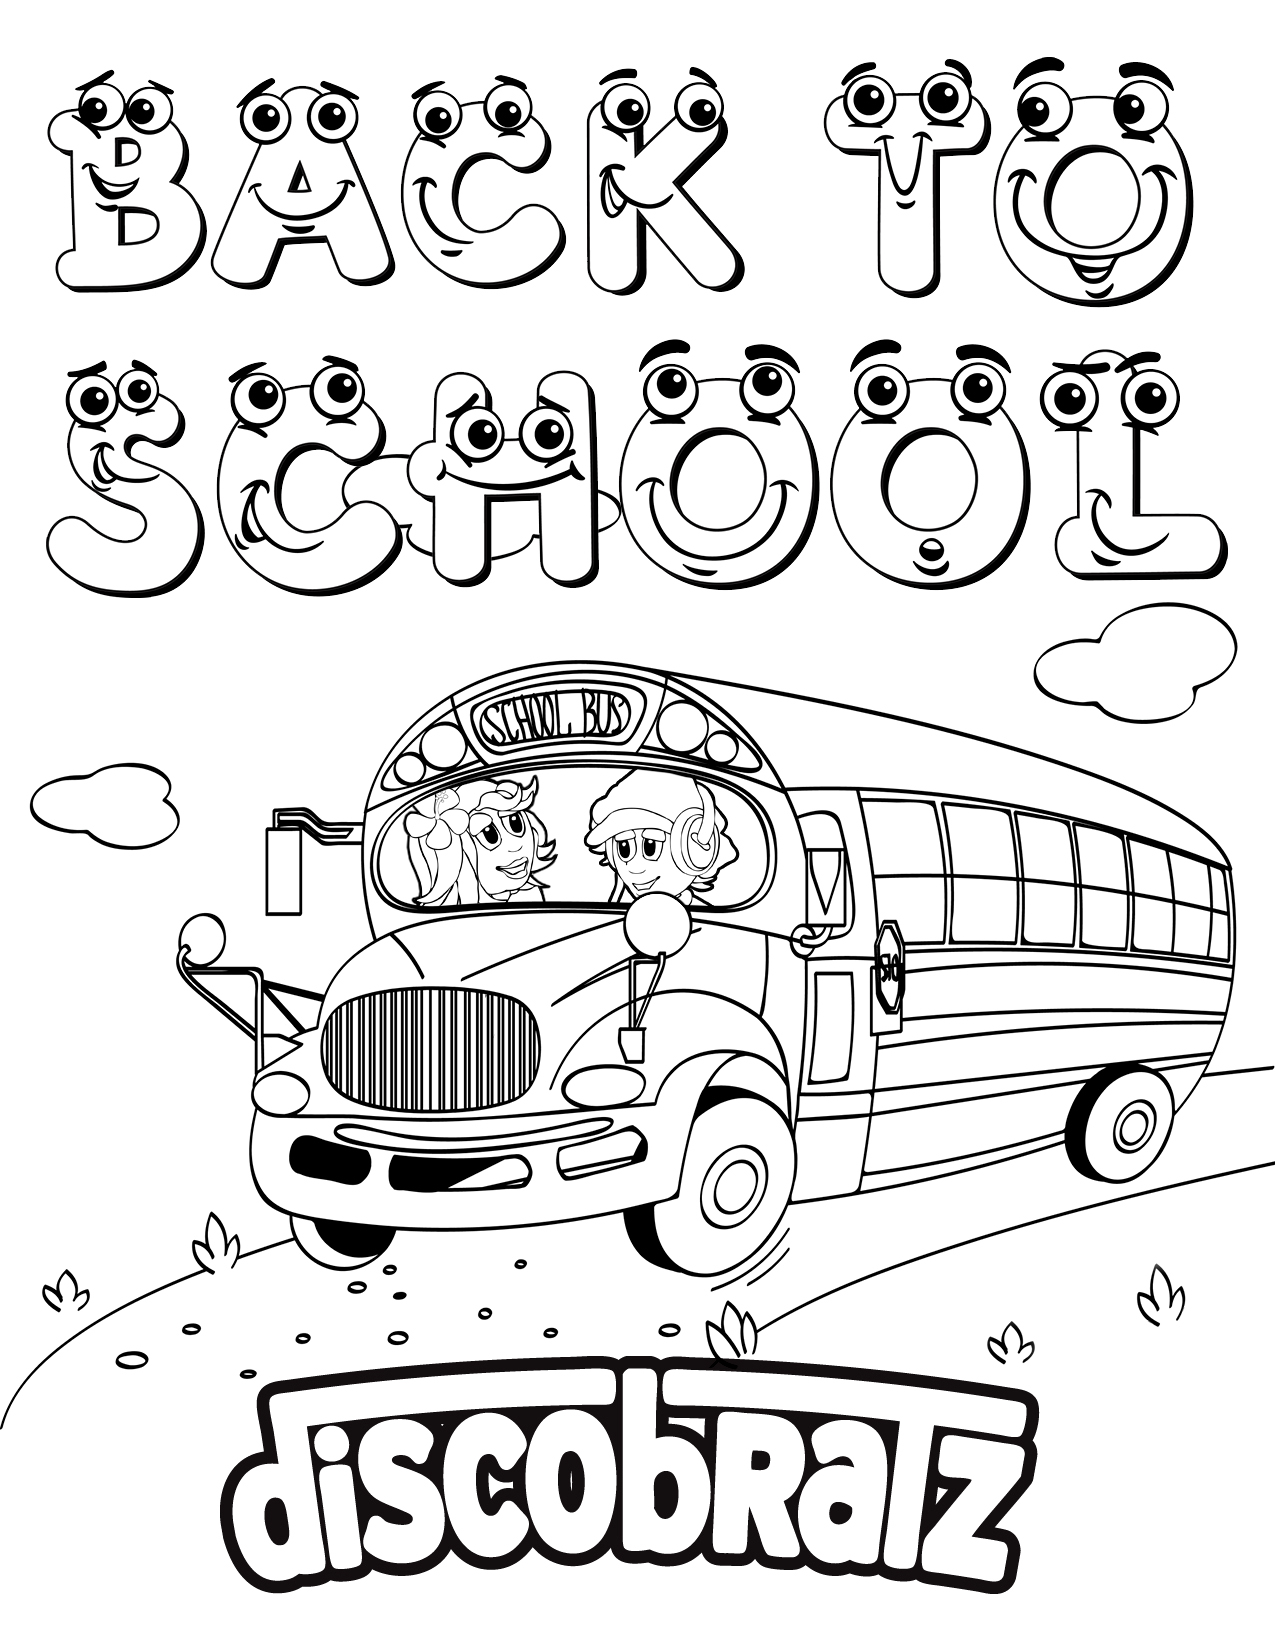 DiscoBratz Releases Back to School Coloring Page